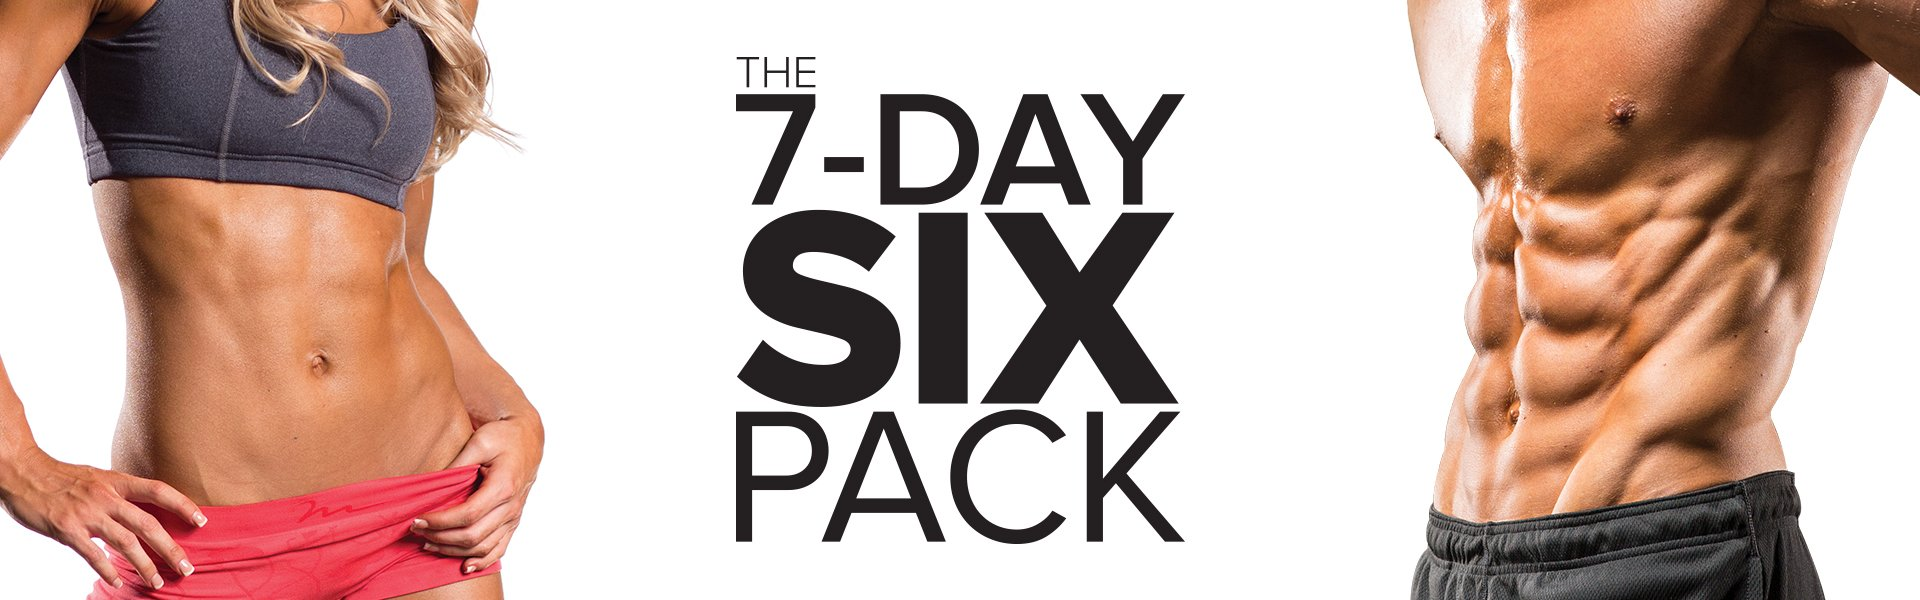 7-Day Six Pack